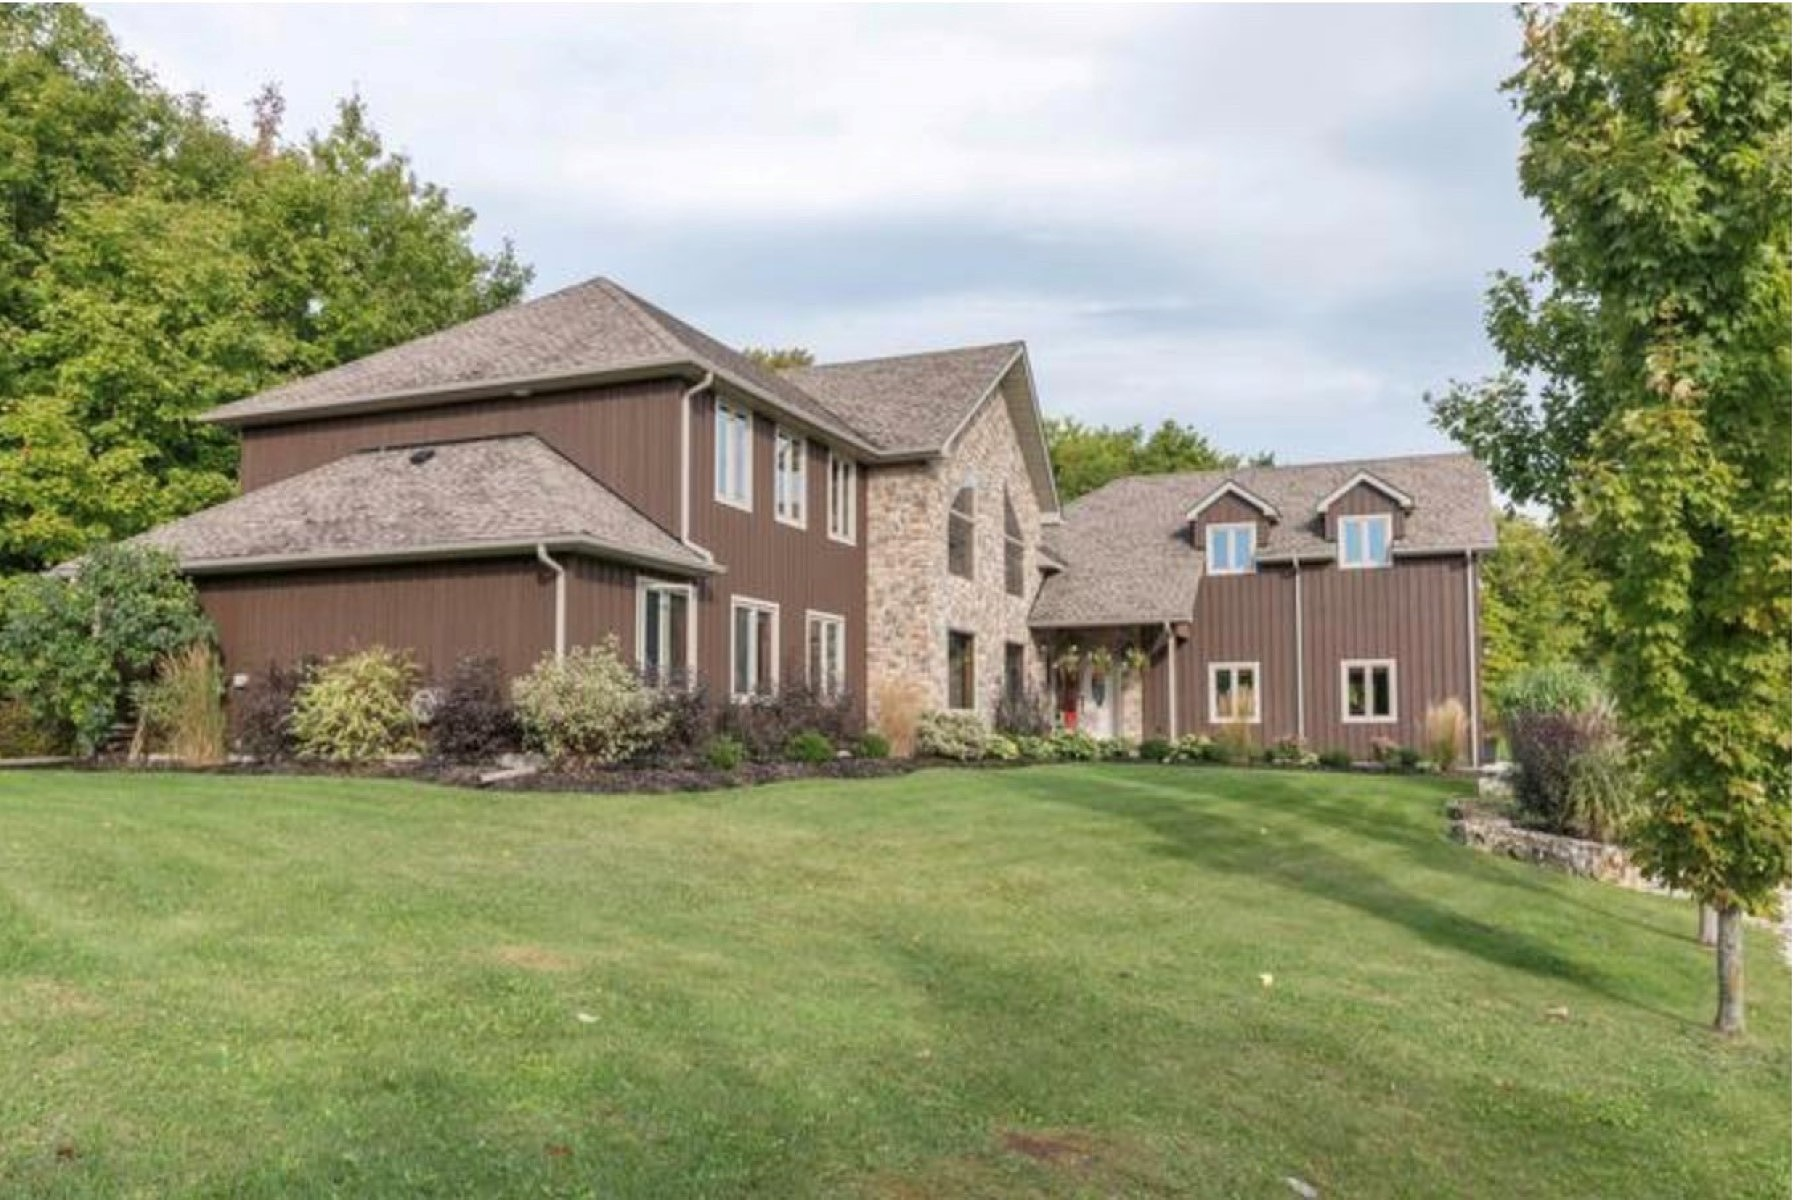 Single Family Homes for Sale at Private Country Home 1416 124 County Rd Clearview, Ontario L0M 1H0 Canada